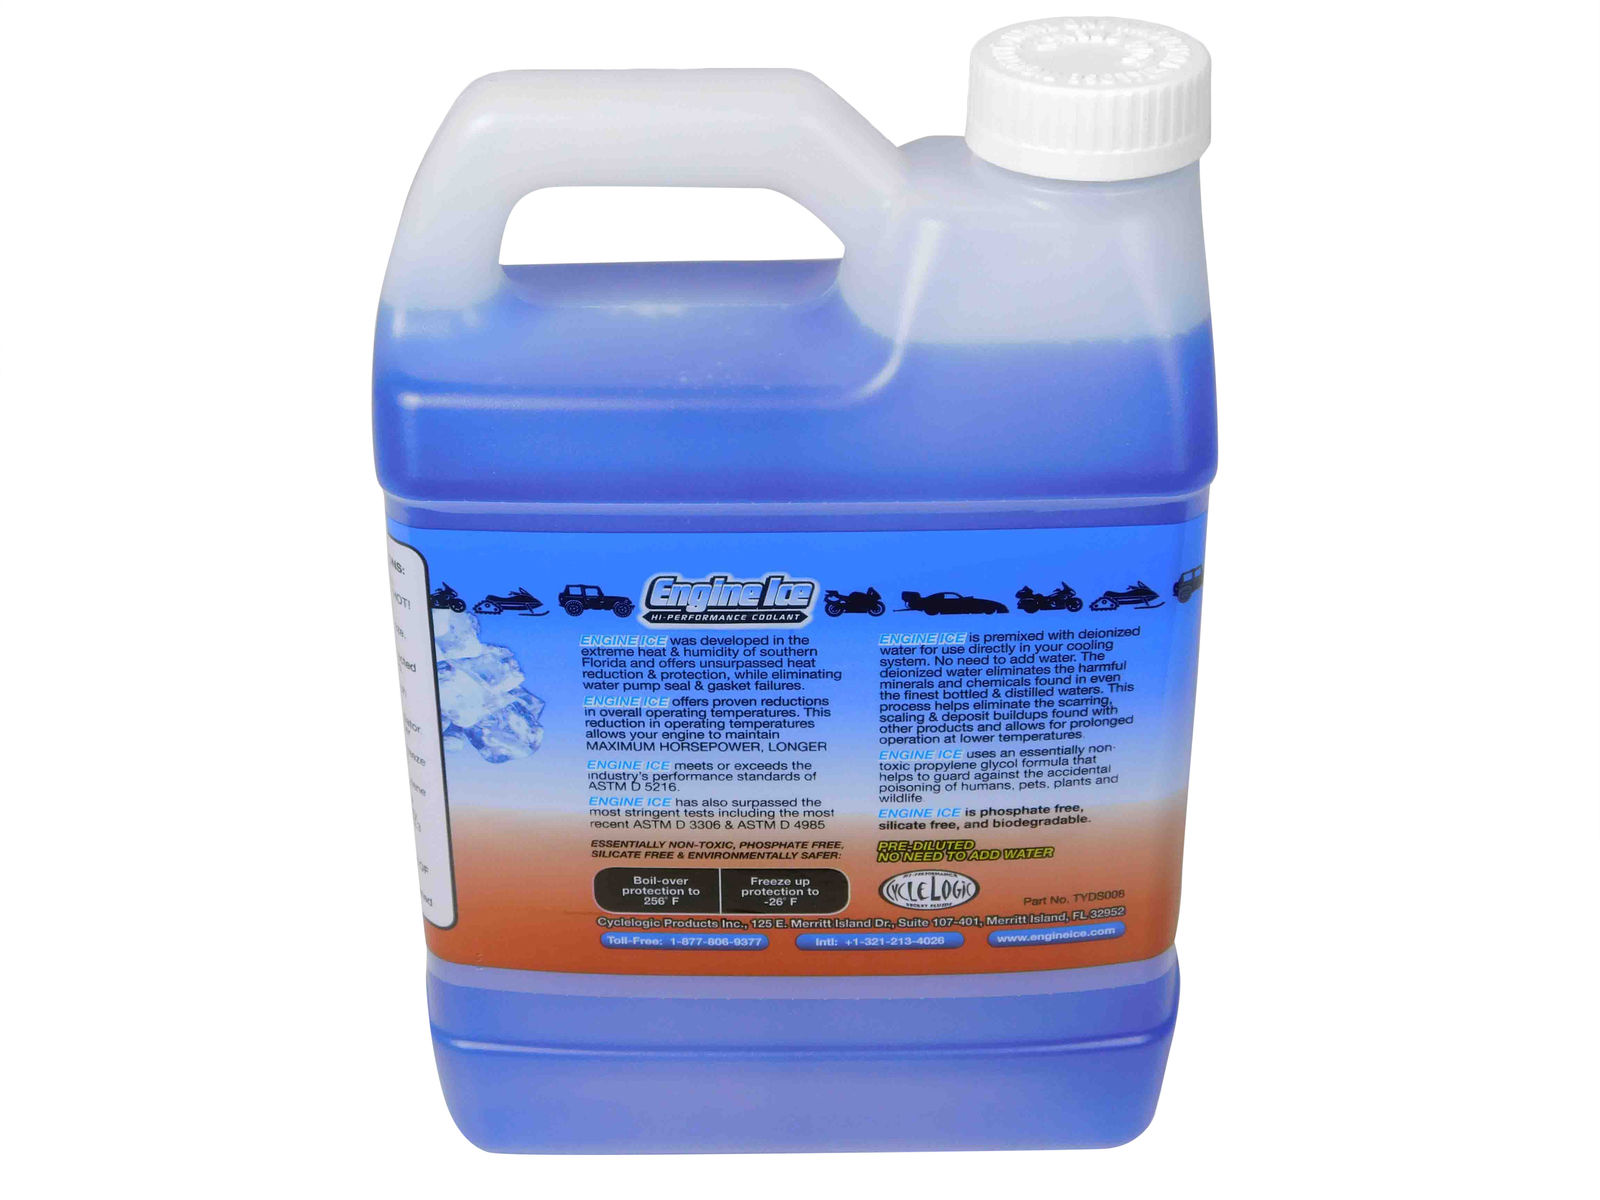 Engine-Ice-TYDS008-03-High-Performance-Coolant-0.5-gallon-5-Pack-image-3